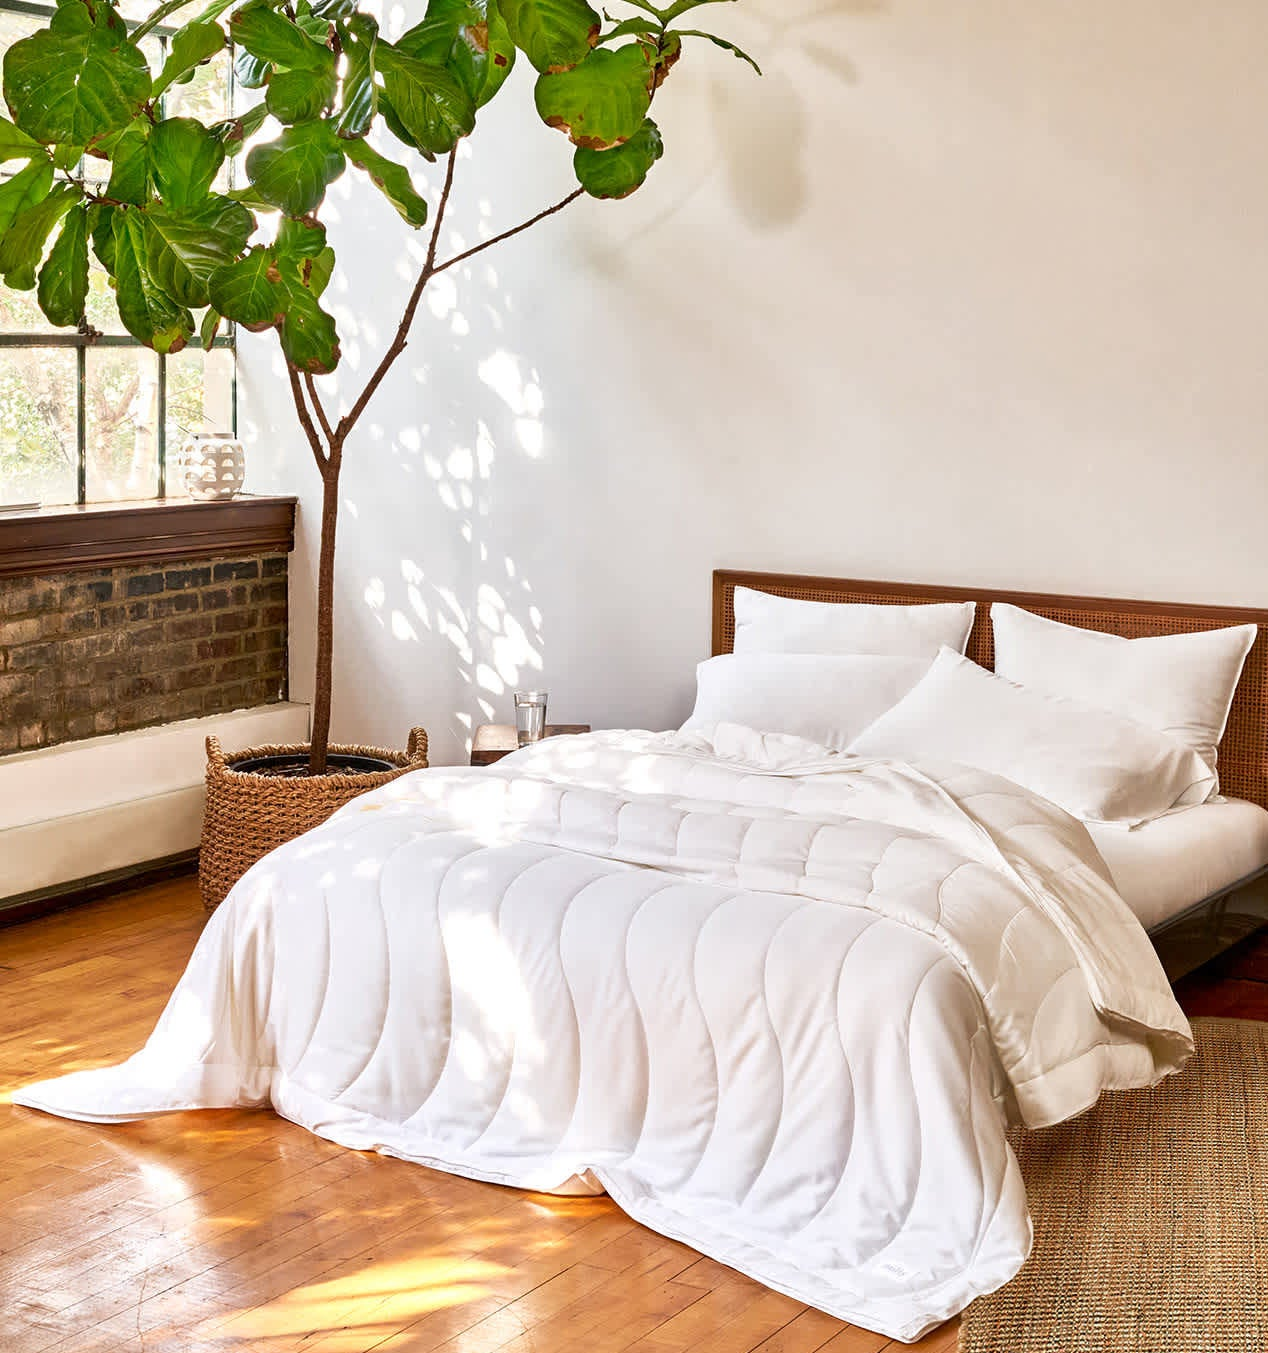 The comforter on a bed